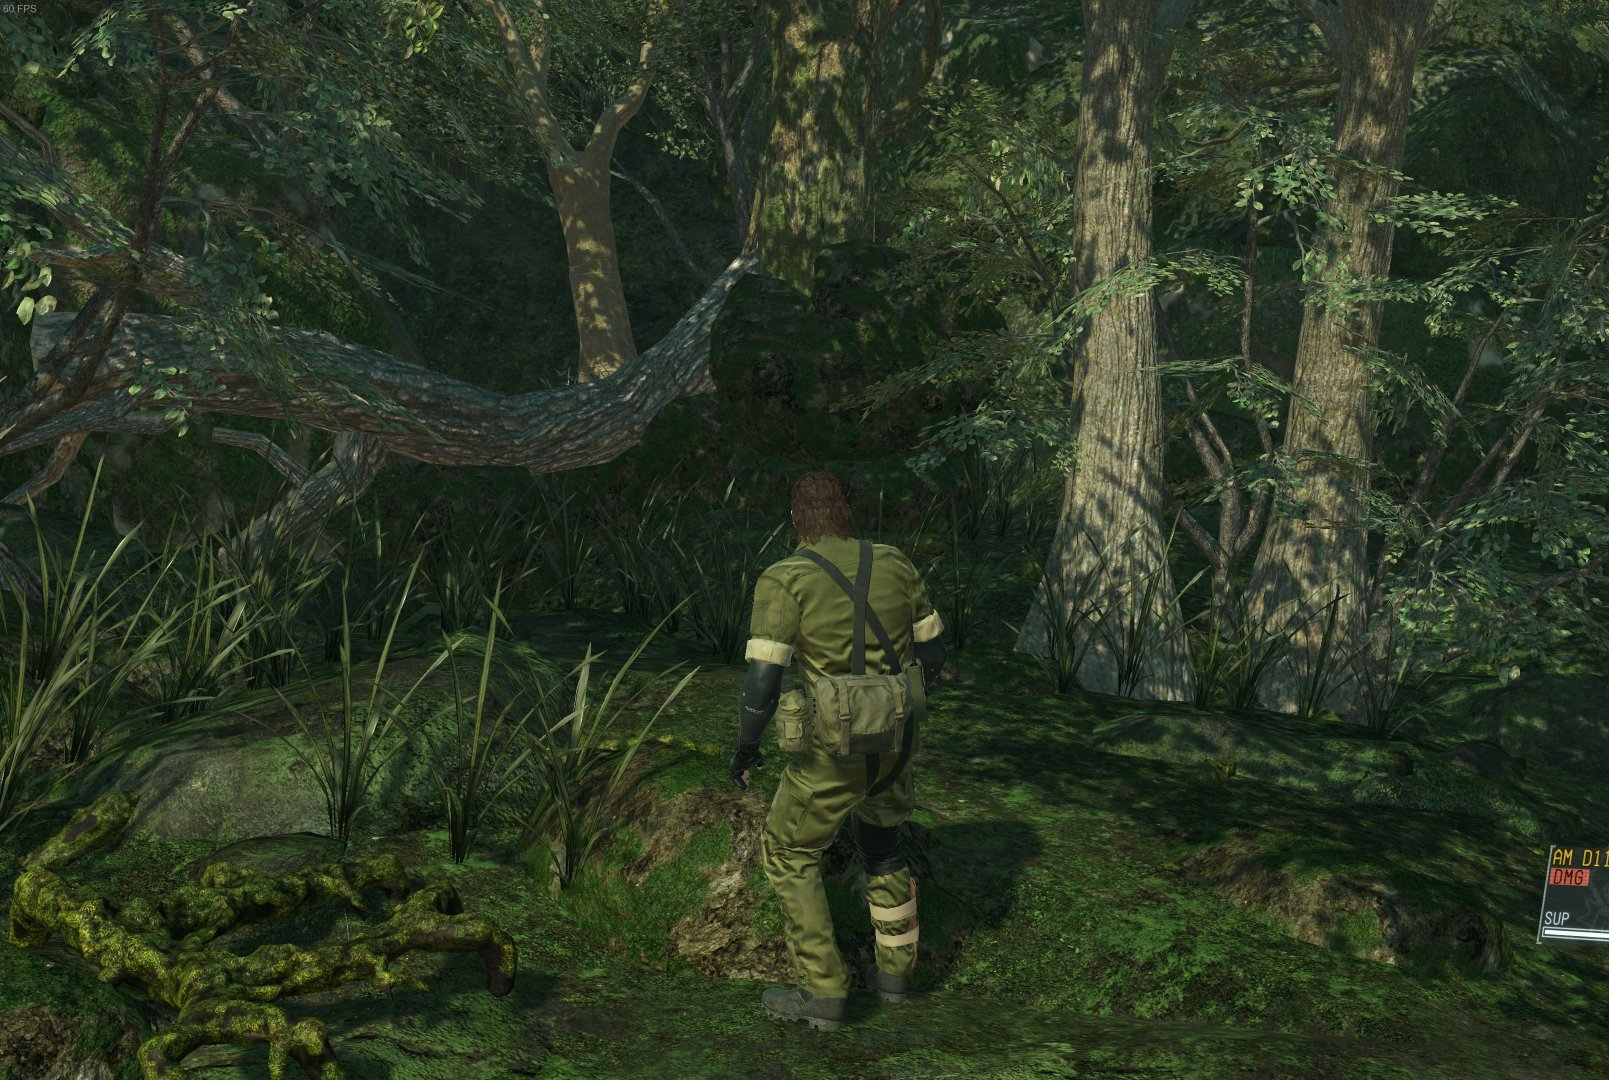 Metal Gear Solid 3 Remake Mod in MGS5-2